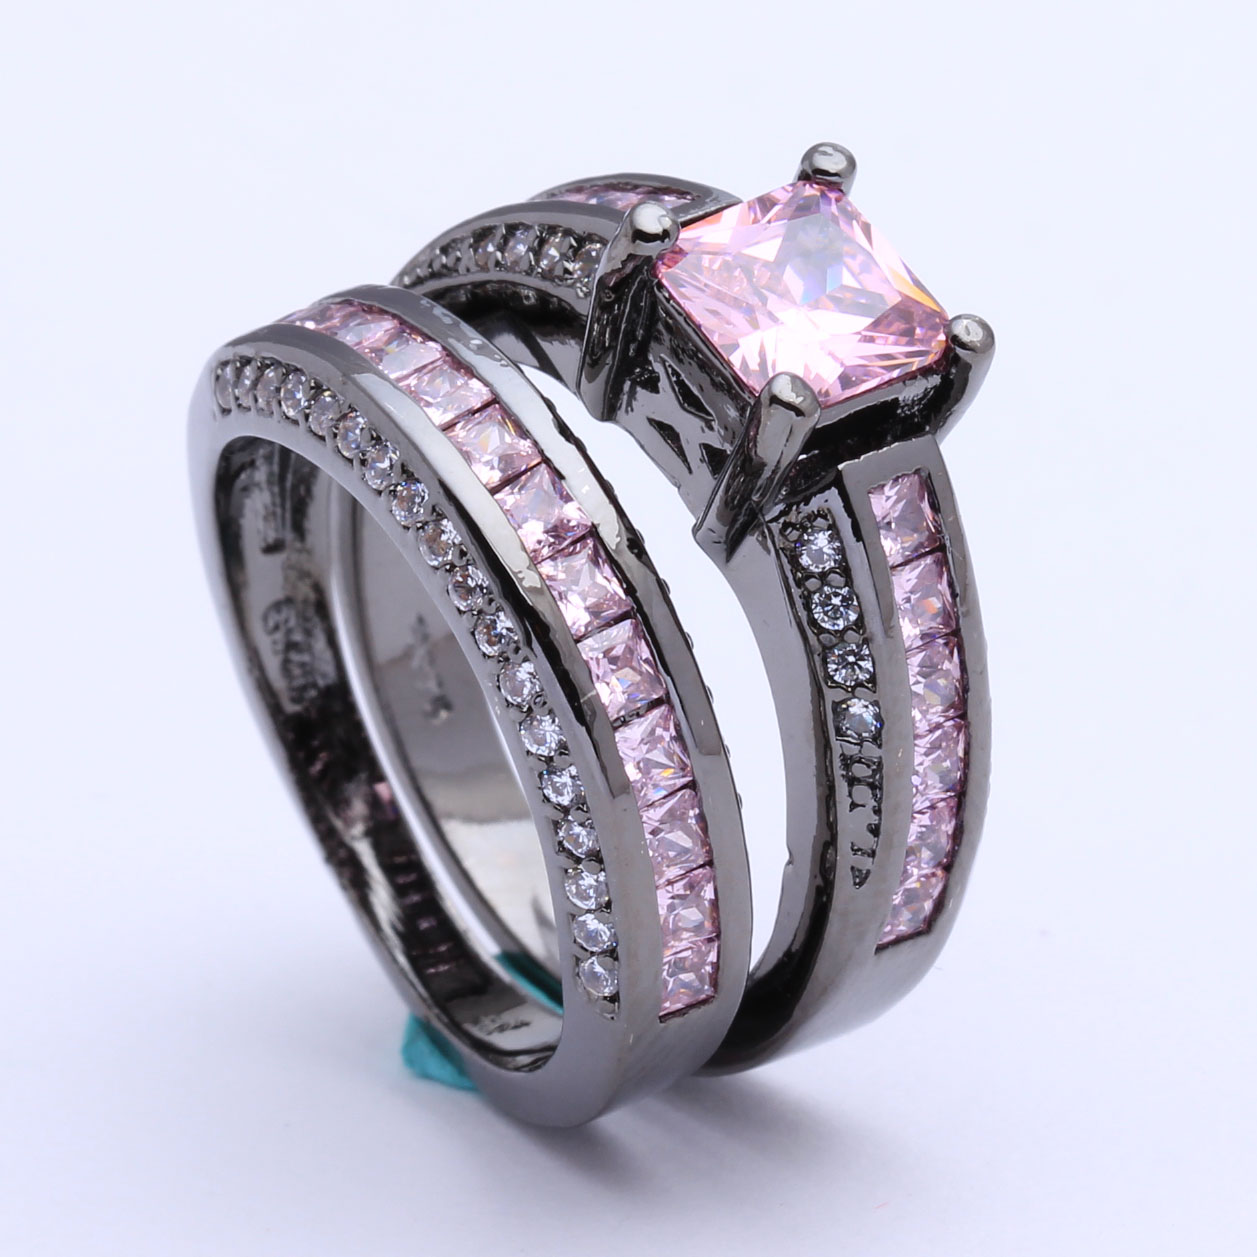 women wedding rings set wholesale black gold color engagement design paved pink blue imitation yellow cz cz zircon jewelry ring - Womens Black Wedding Ring Sets